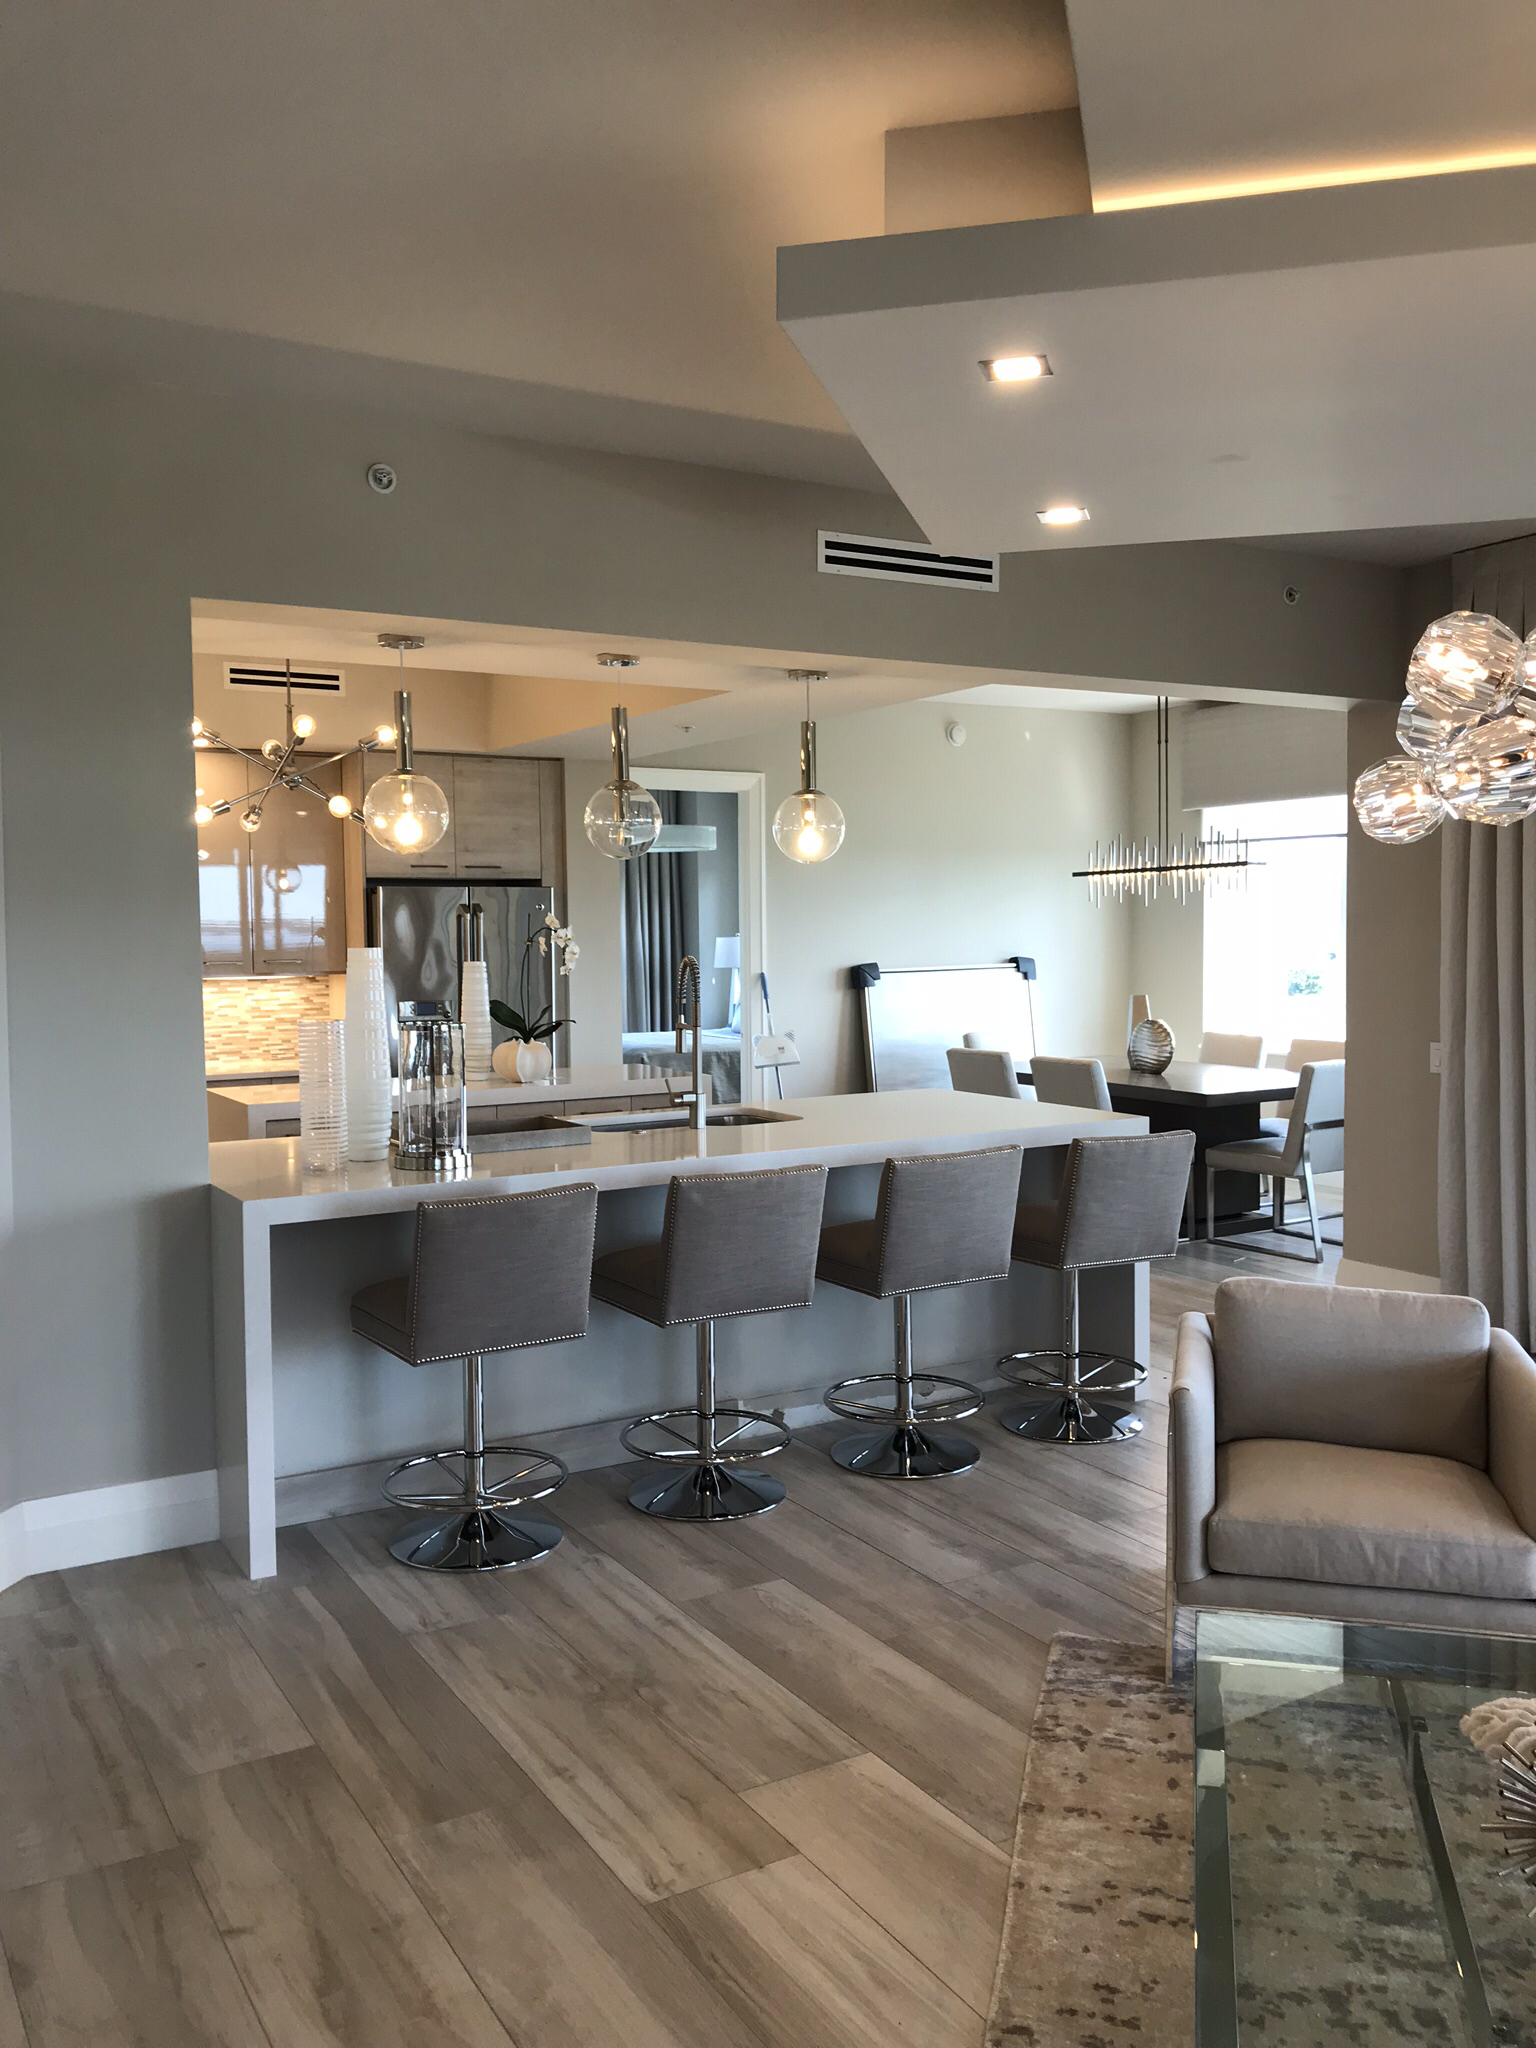 Interior Kitchen Design With Tv Room: Pin By Laurie Walter On Kitchen Islands In 2019